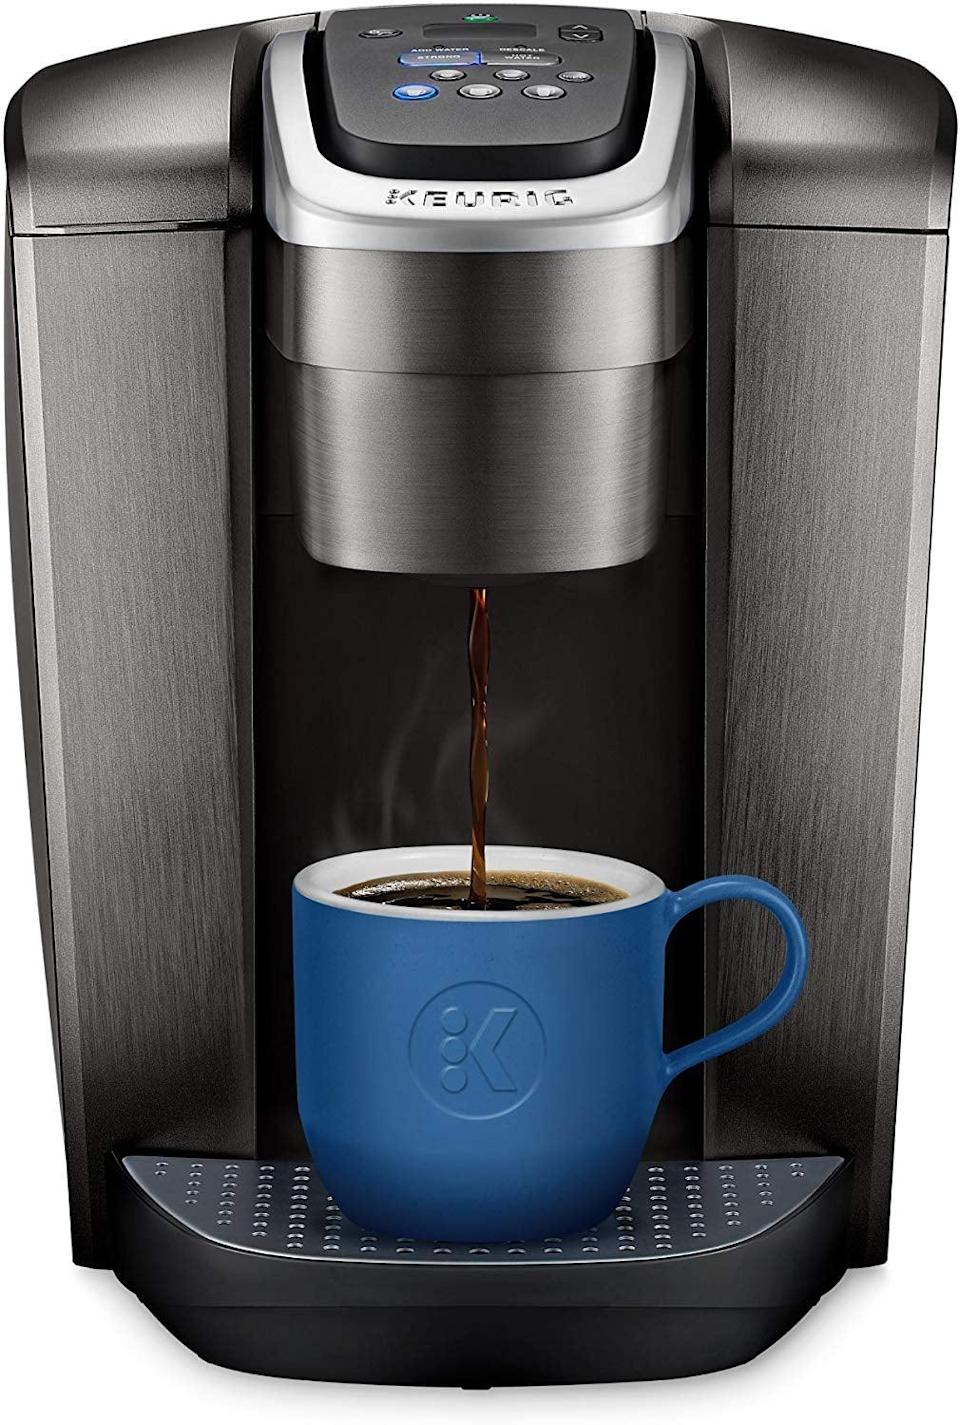 <p>They can enjoy their morning cup of coffee easily with this <span>Keurig Single Serve K-Cup Pod Coffee Maker</span> ($130).</p>